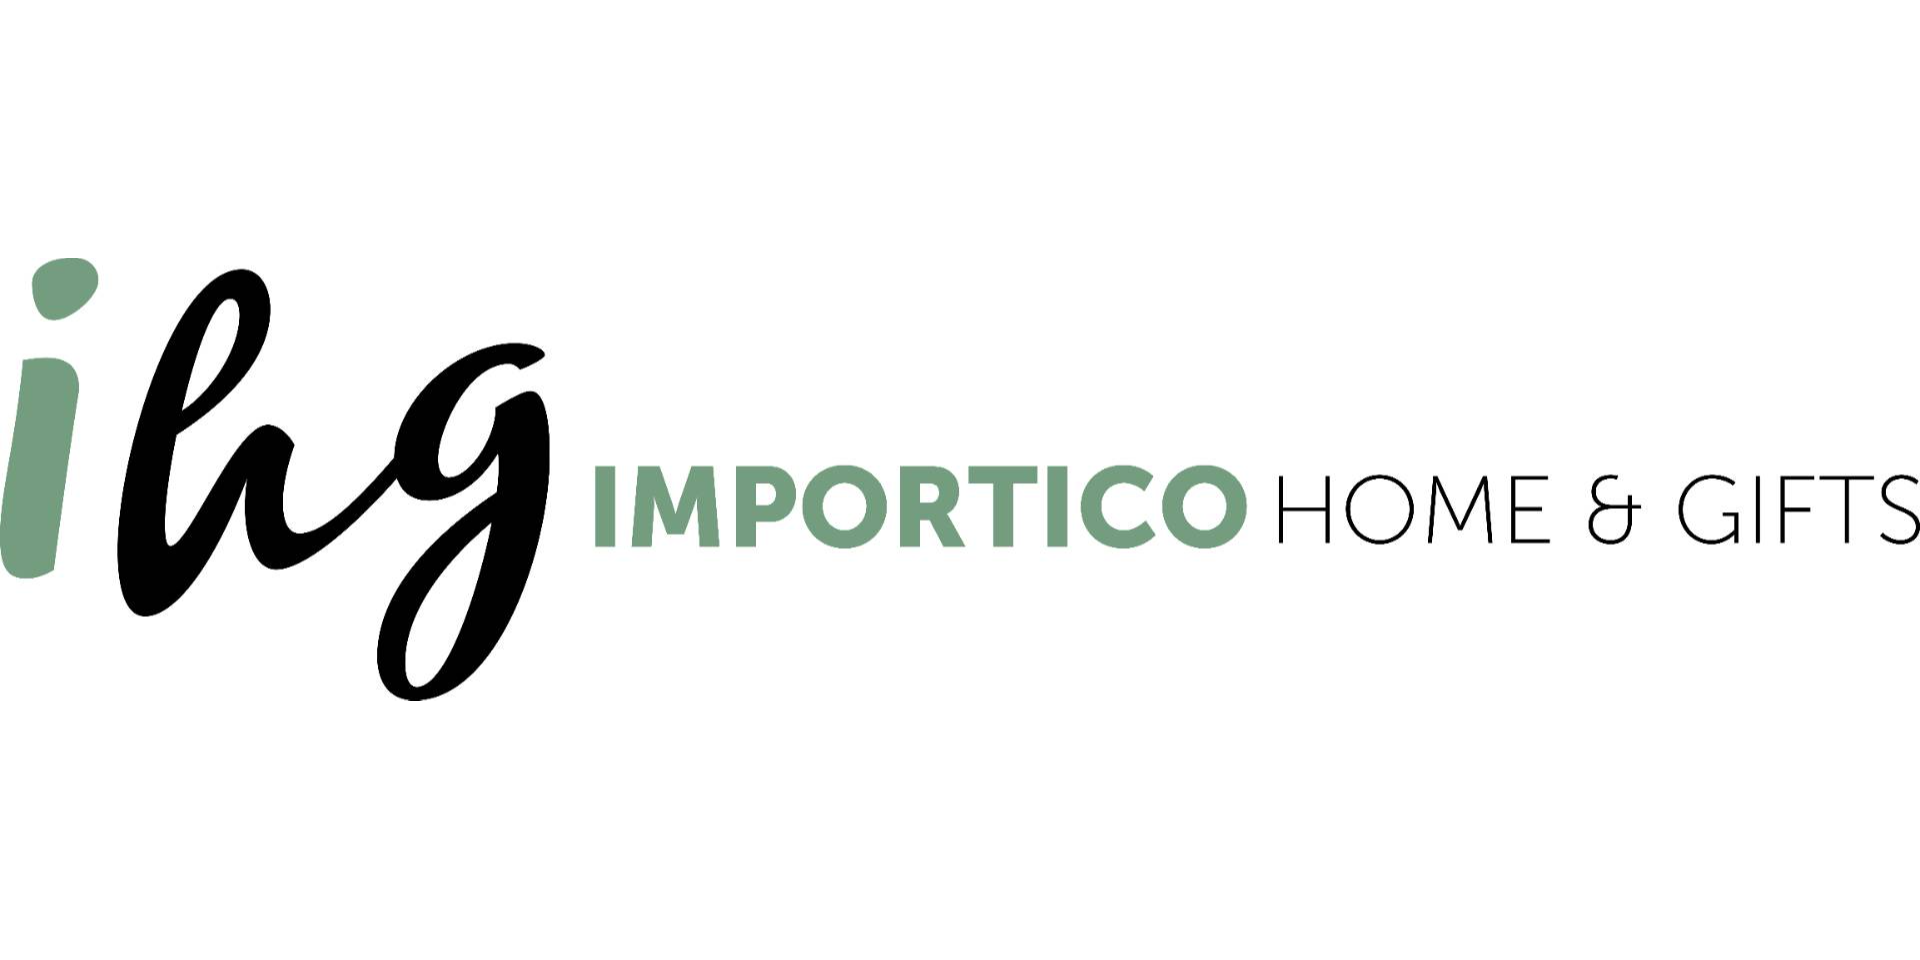 IMPORTICO HOME & GIFTS